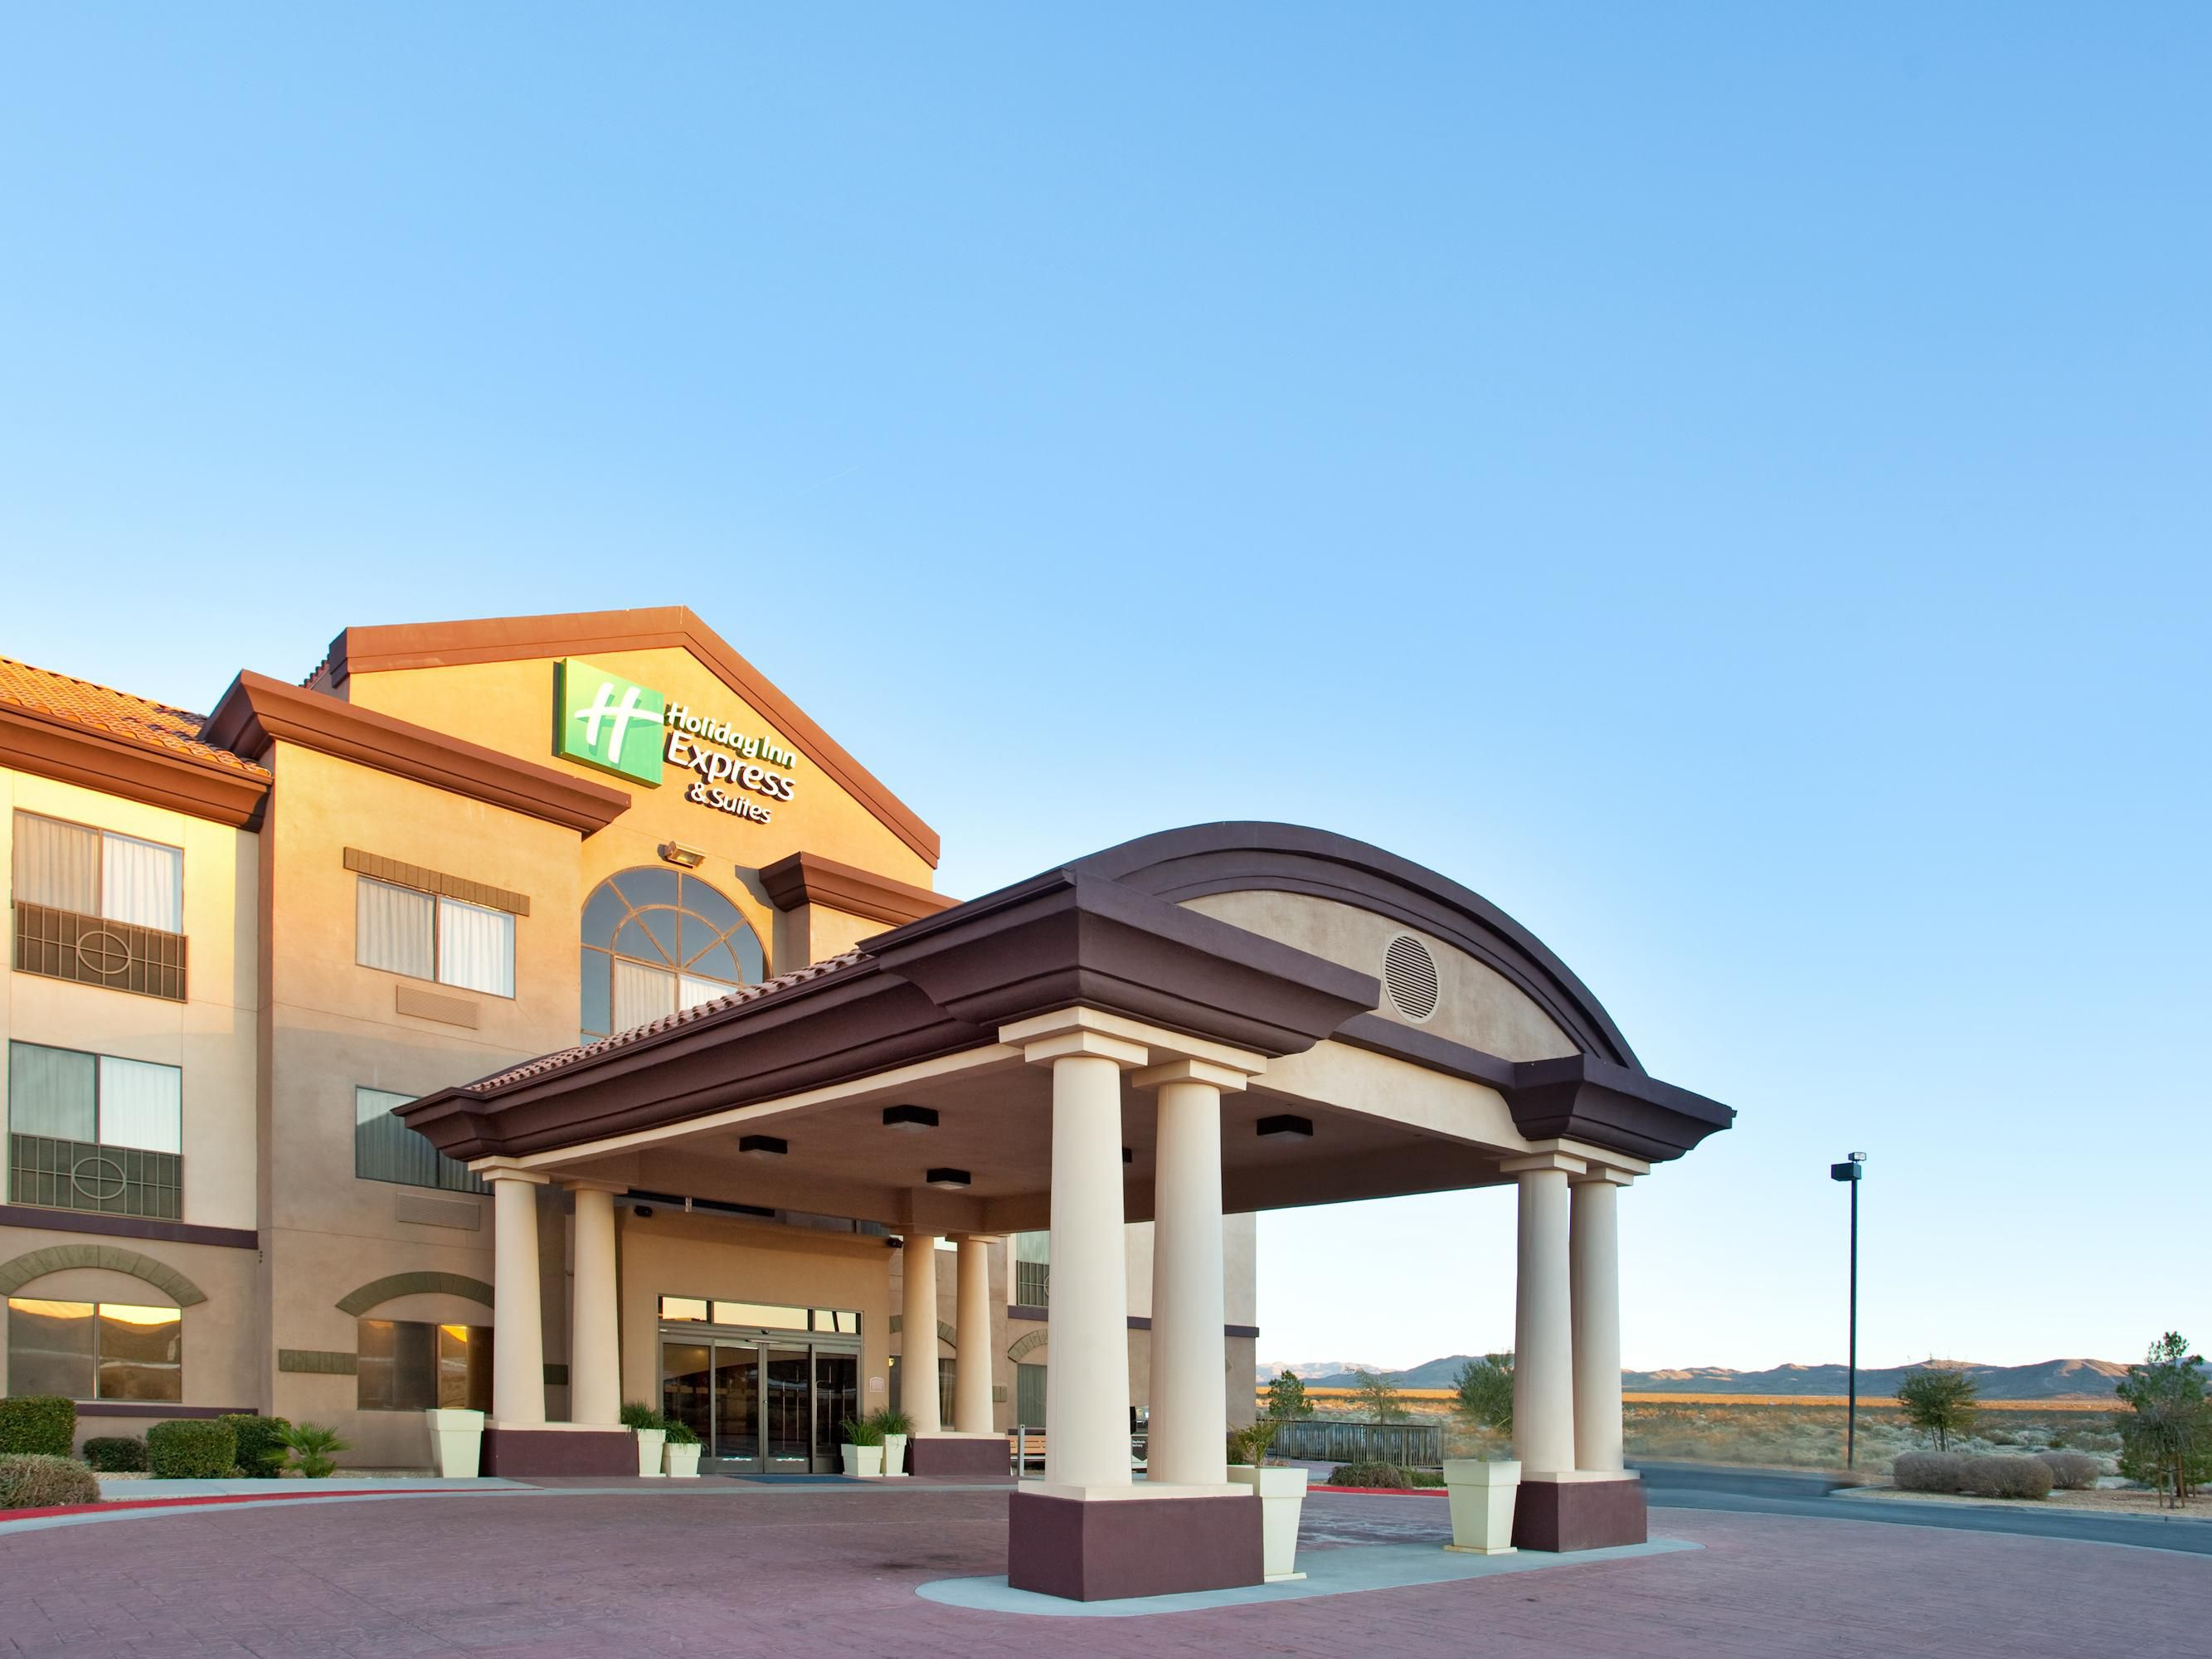 Holiday Inn Express Inn & Suites Outlet Center Front Entrance